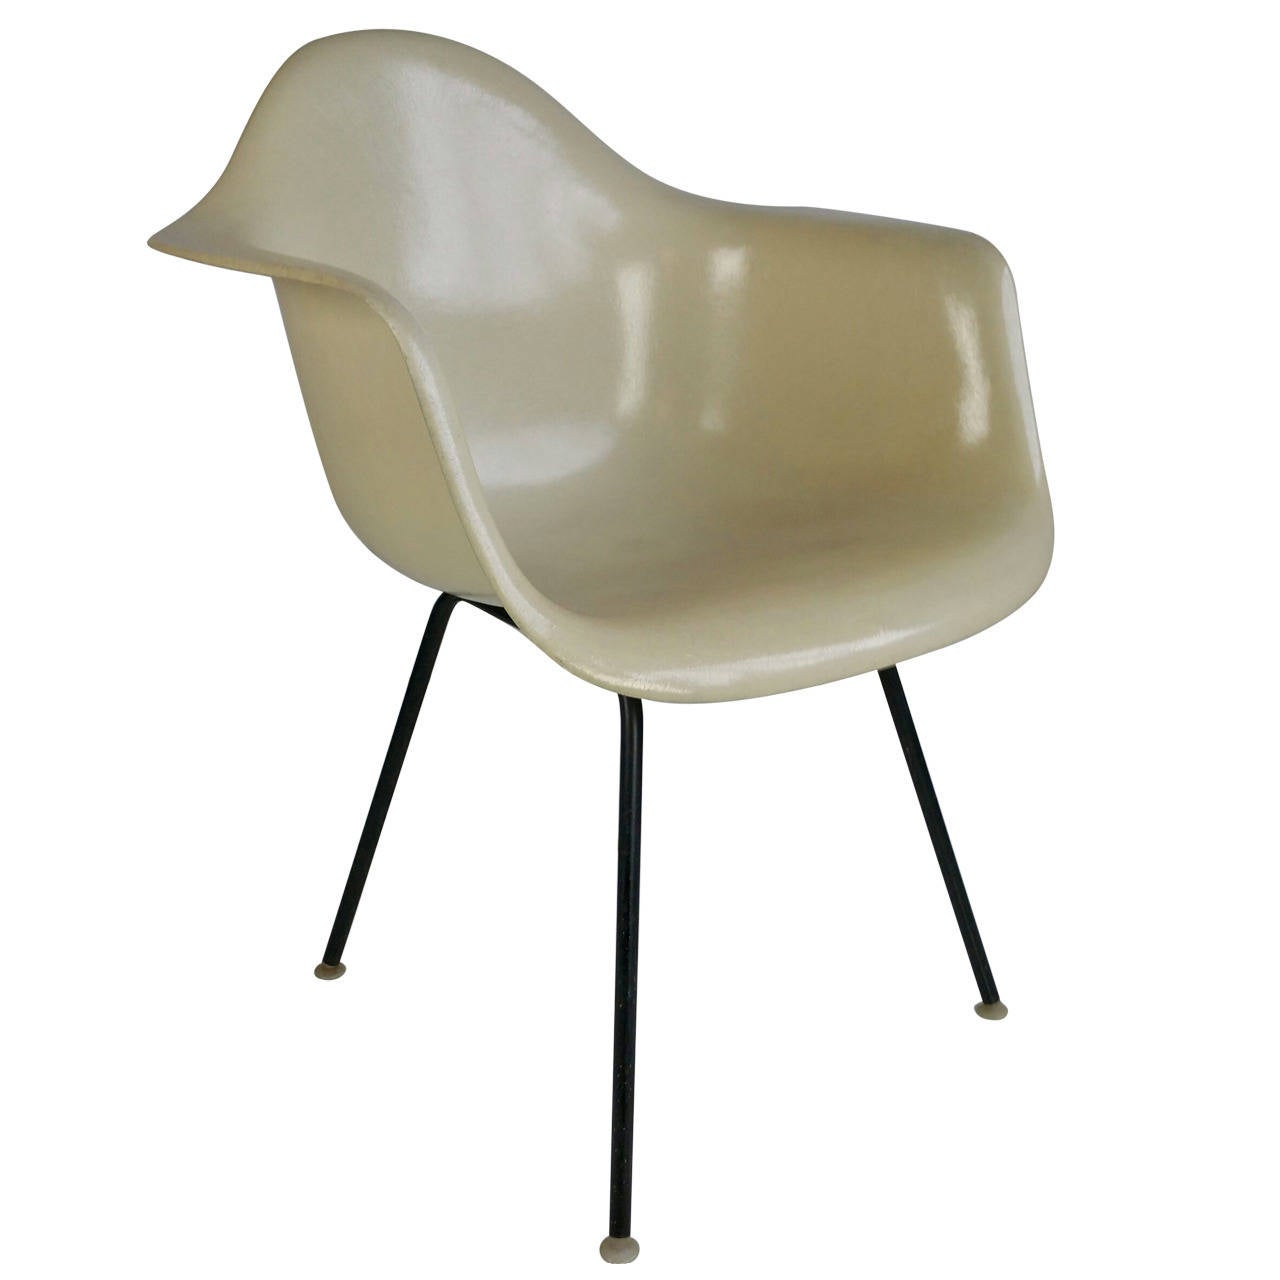 charles eames parchment arm shell chair herman miller for sale at 1stdibs. Black Bedroom Furniture Sets. Home Design Ideas